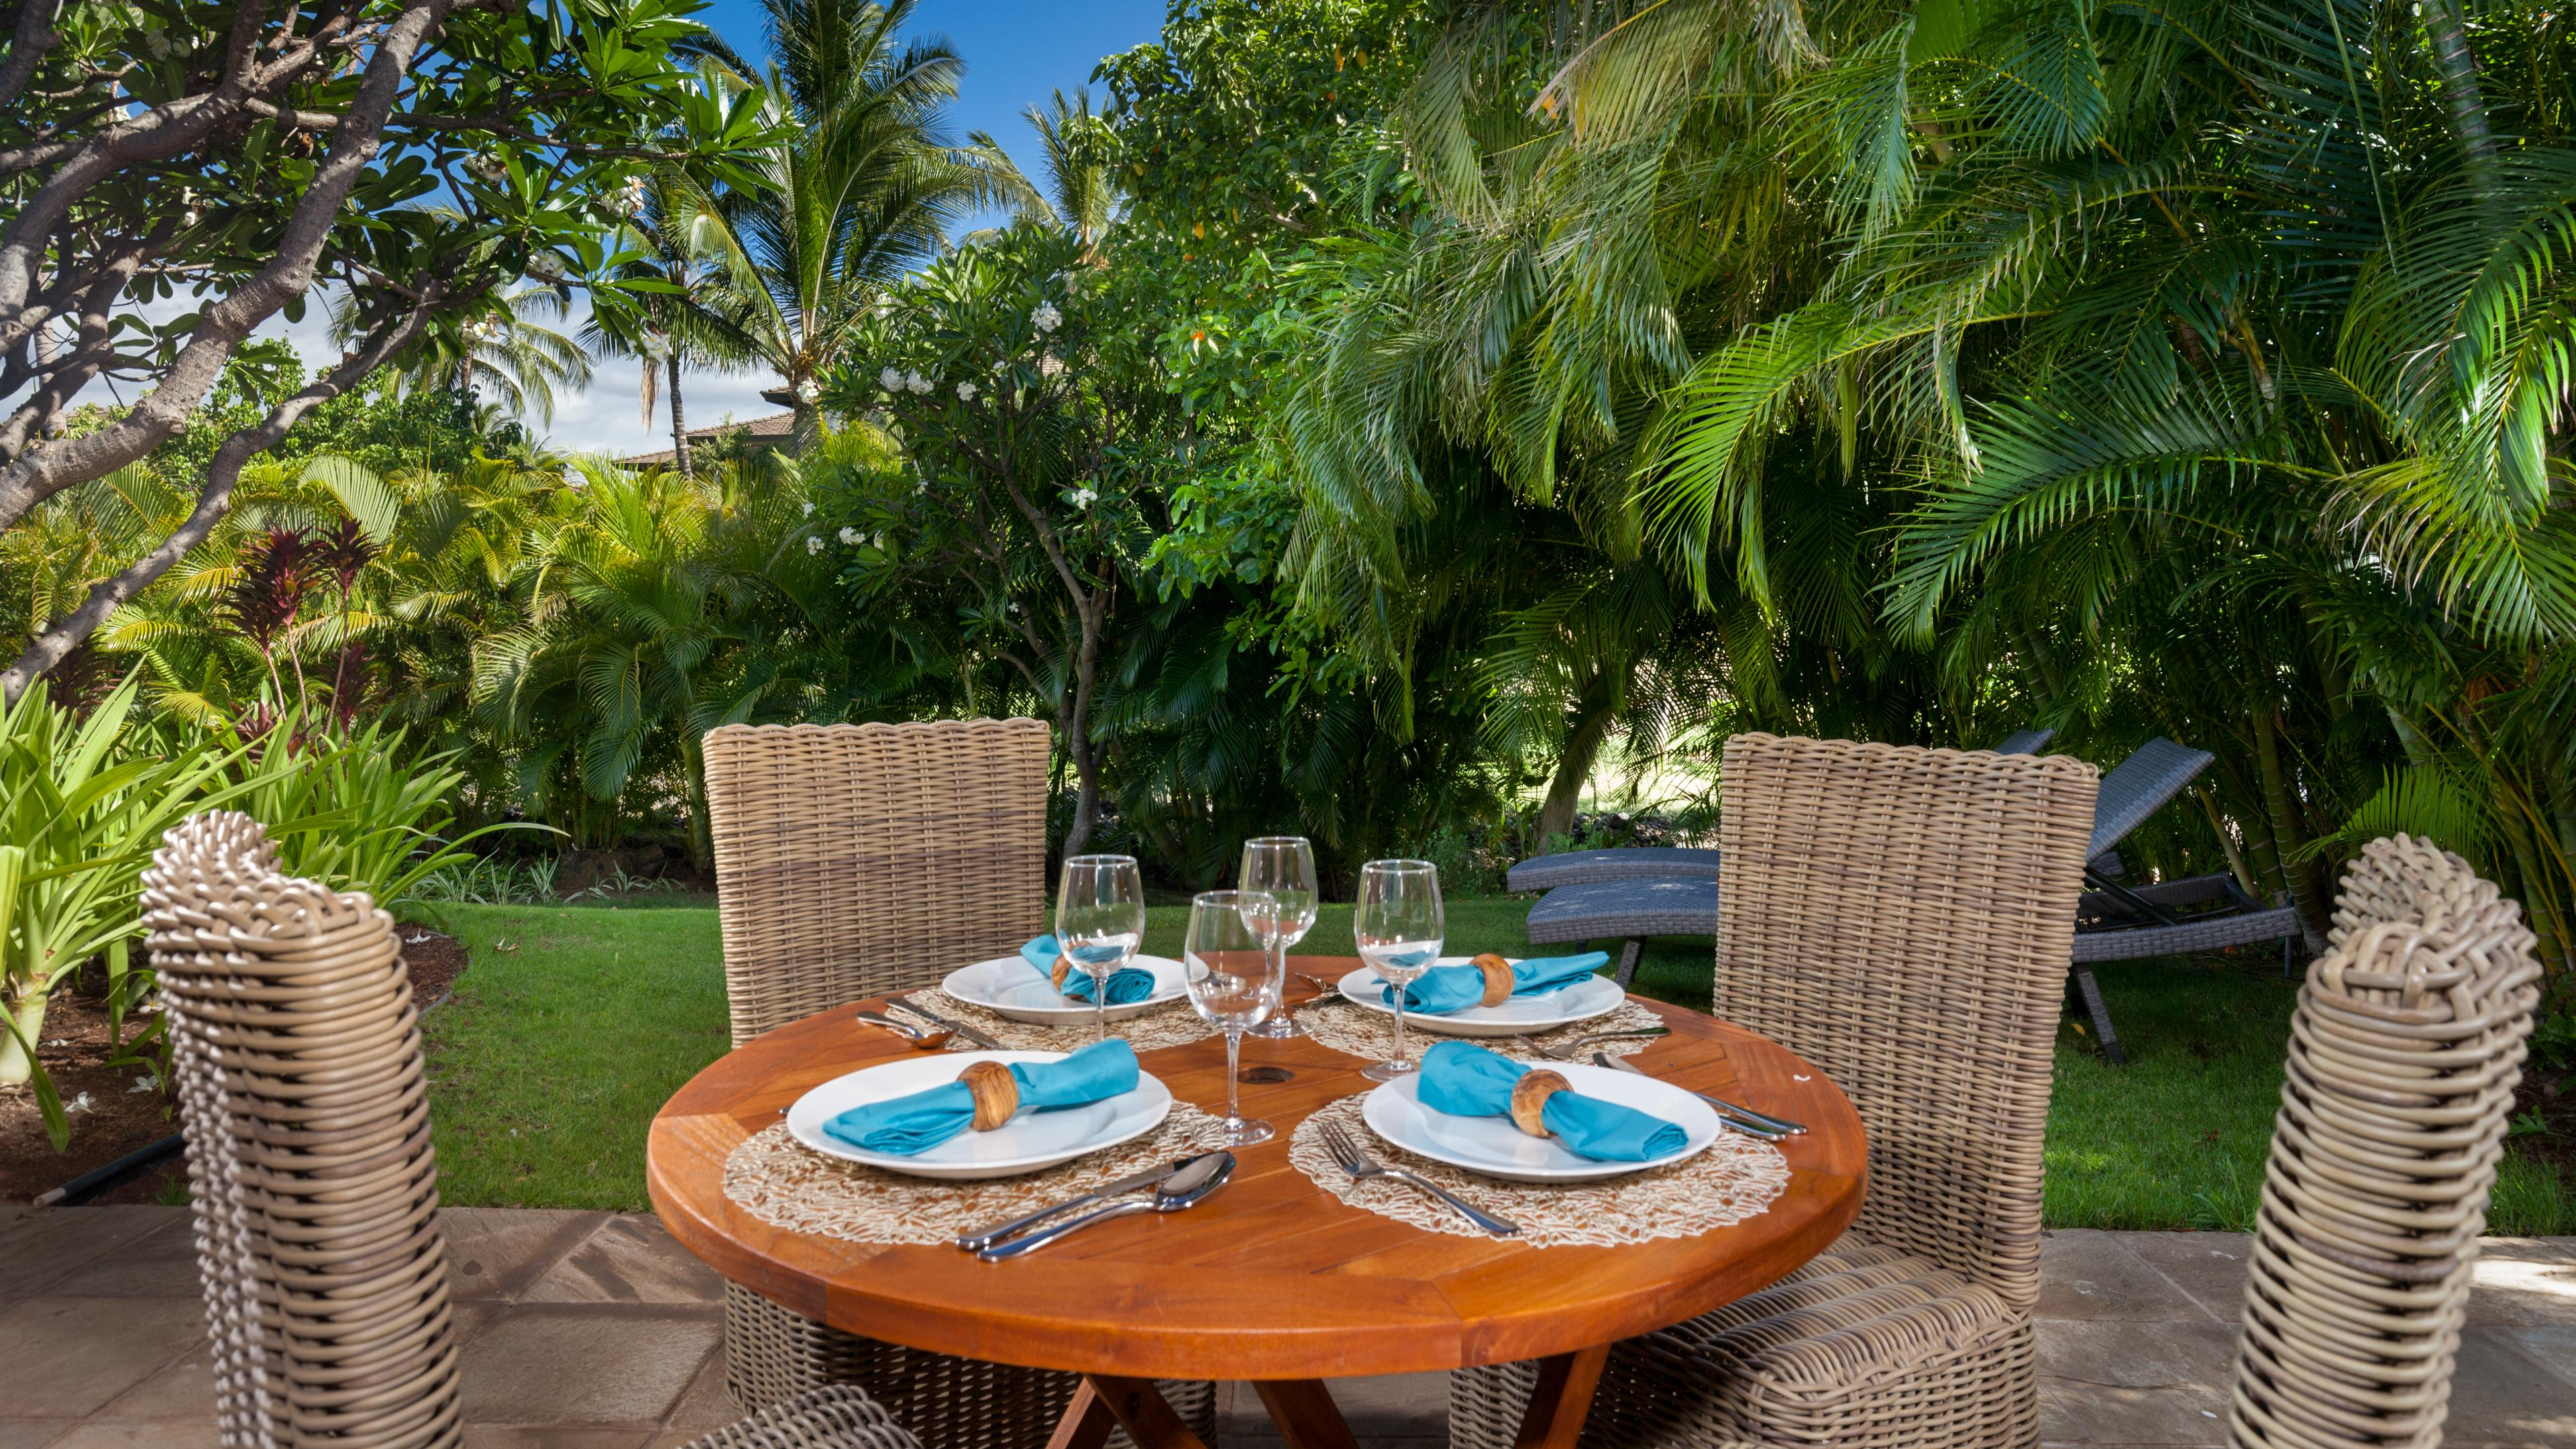 Outdoor dining in tropical paradise